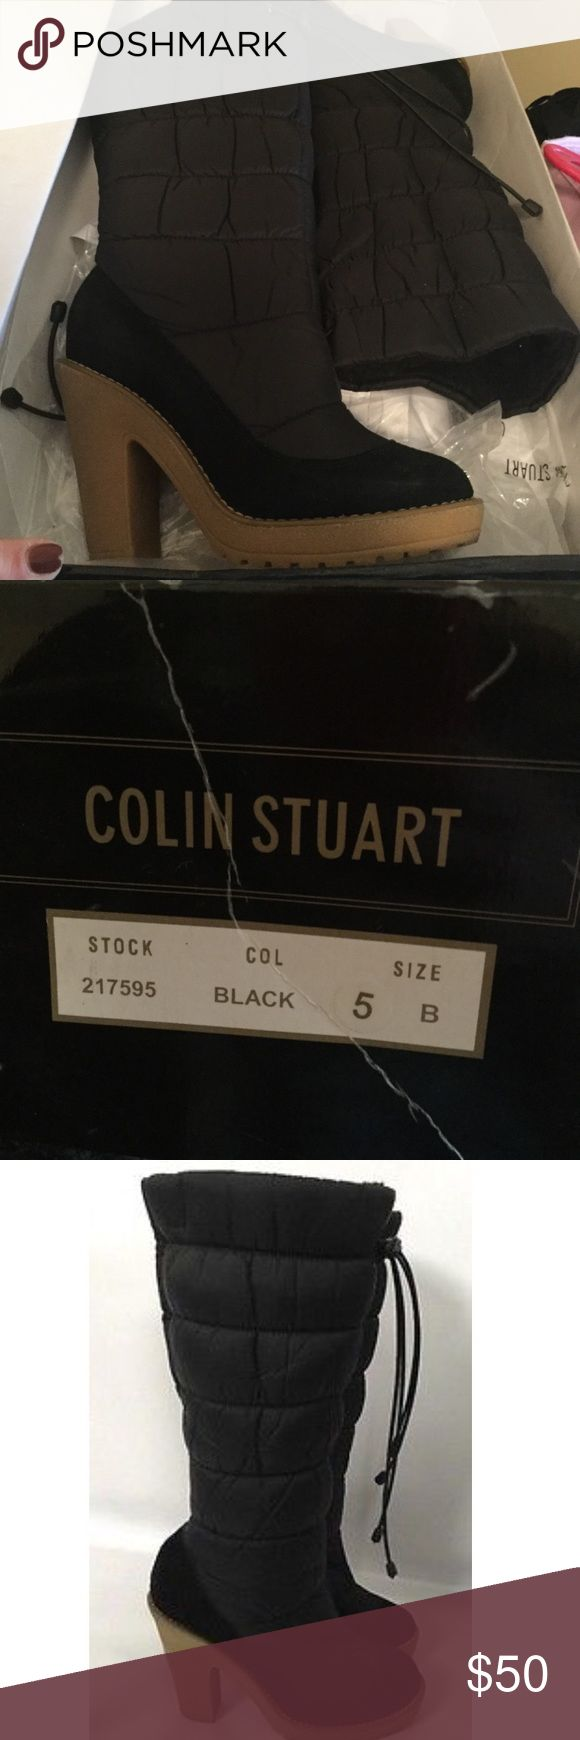 Colin Stuart NEW Black Boots Puffy Quit Nylon Sz 5 Brand New in box. Colin Stuart Boots. Quilted Puffer Style. Rubber Heel/Sole. Black Knee High. Size 5. (Brown Boots pictured is only for reference) Colin Stuart Shoes Winter & Rain Boots